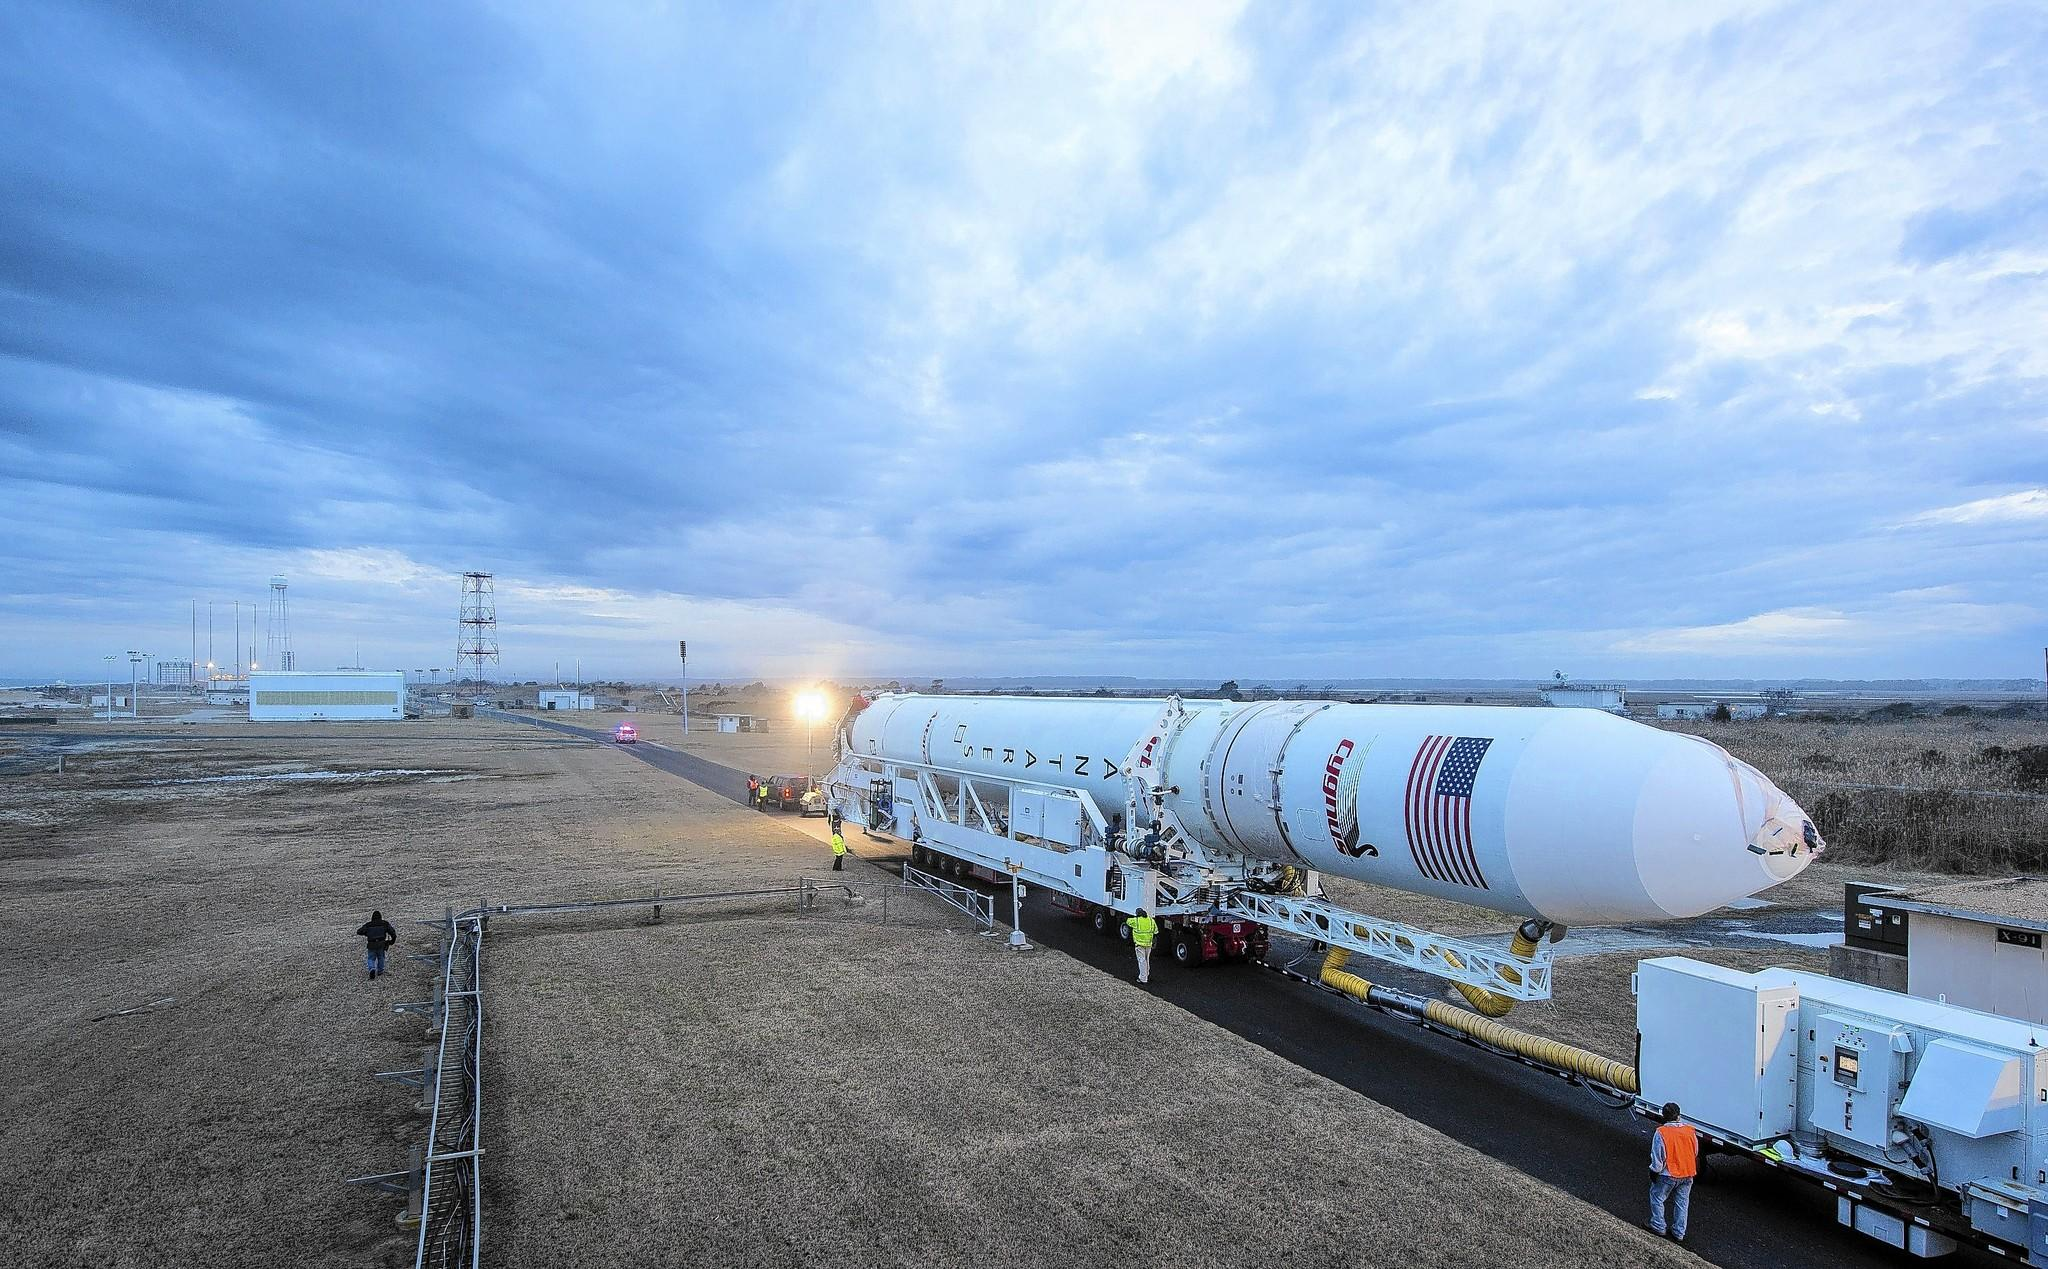 An Orbital Sciences Corporation Antares rocket is rolled out to launch Pad-0A at NASA's Wallops Flight Facility on January 5, 2014 in advance of a planned January 8 launch.